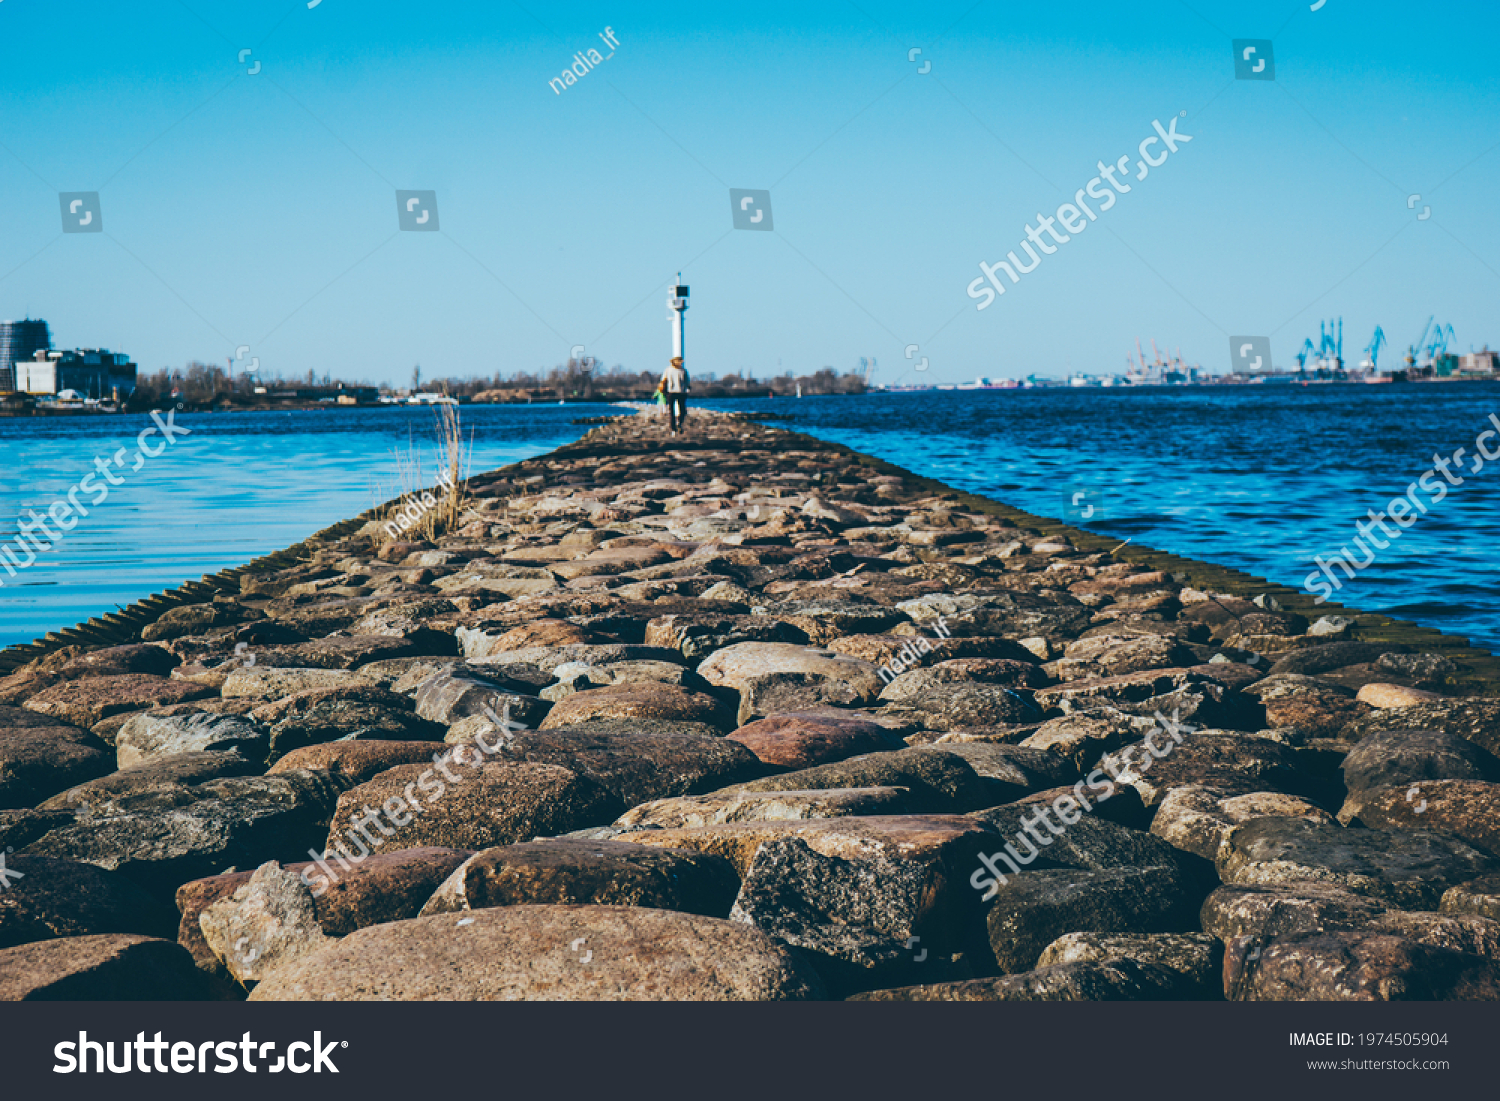 clear blue sky on the pier large stones in the foreground . High quality photo #1974505904